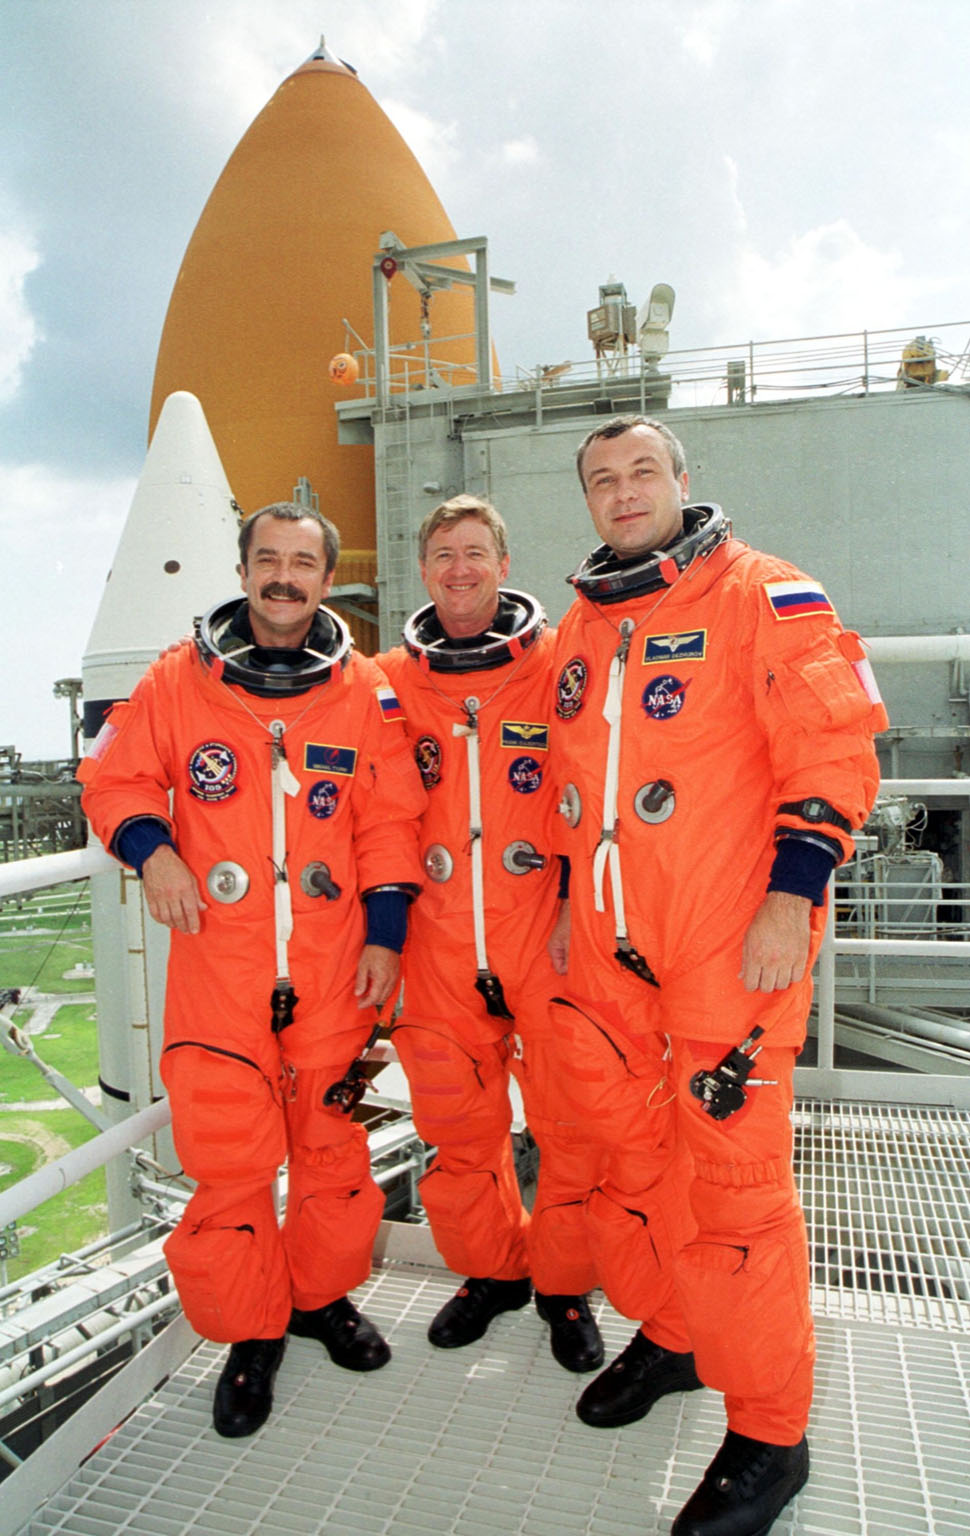 KENNEDY SPACE CENTER, Fla. -- The Expedition Three crew poses on the Fixed Service Structure at Launch Pad 39A. From left are cosmonaut Mikhail Tyurin, commander Frank Culbertson and cosmonaut Vladimir Nikolaevich Dezhurov. The STS-105 and Expedition Three crews are at Kennedy Space Center participating in a Terminal Countdown Demonstration Test, a dress rehearsal for launch. The activities include emergency egress training, a simulated launch countdown and familiarization with the payload. Mission STS-105 will be transporting the Expedition Three crew, several payloads and scientific experiments to the International Space Station aboard Space Shuttle Discovery. The Expedition Two crew members currently on the Station will return to Earth on Discovery. The mission is scheduled to launch no earlier than Aug. 9, 2001